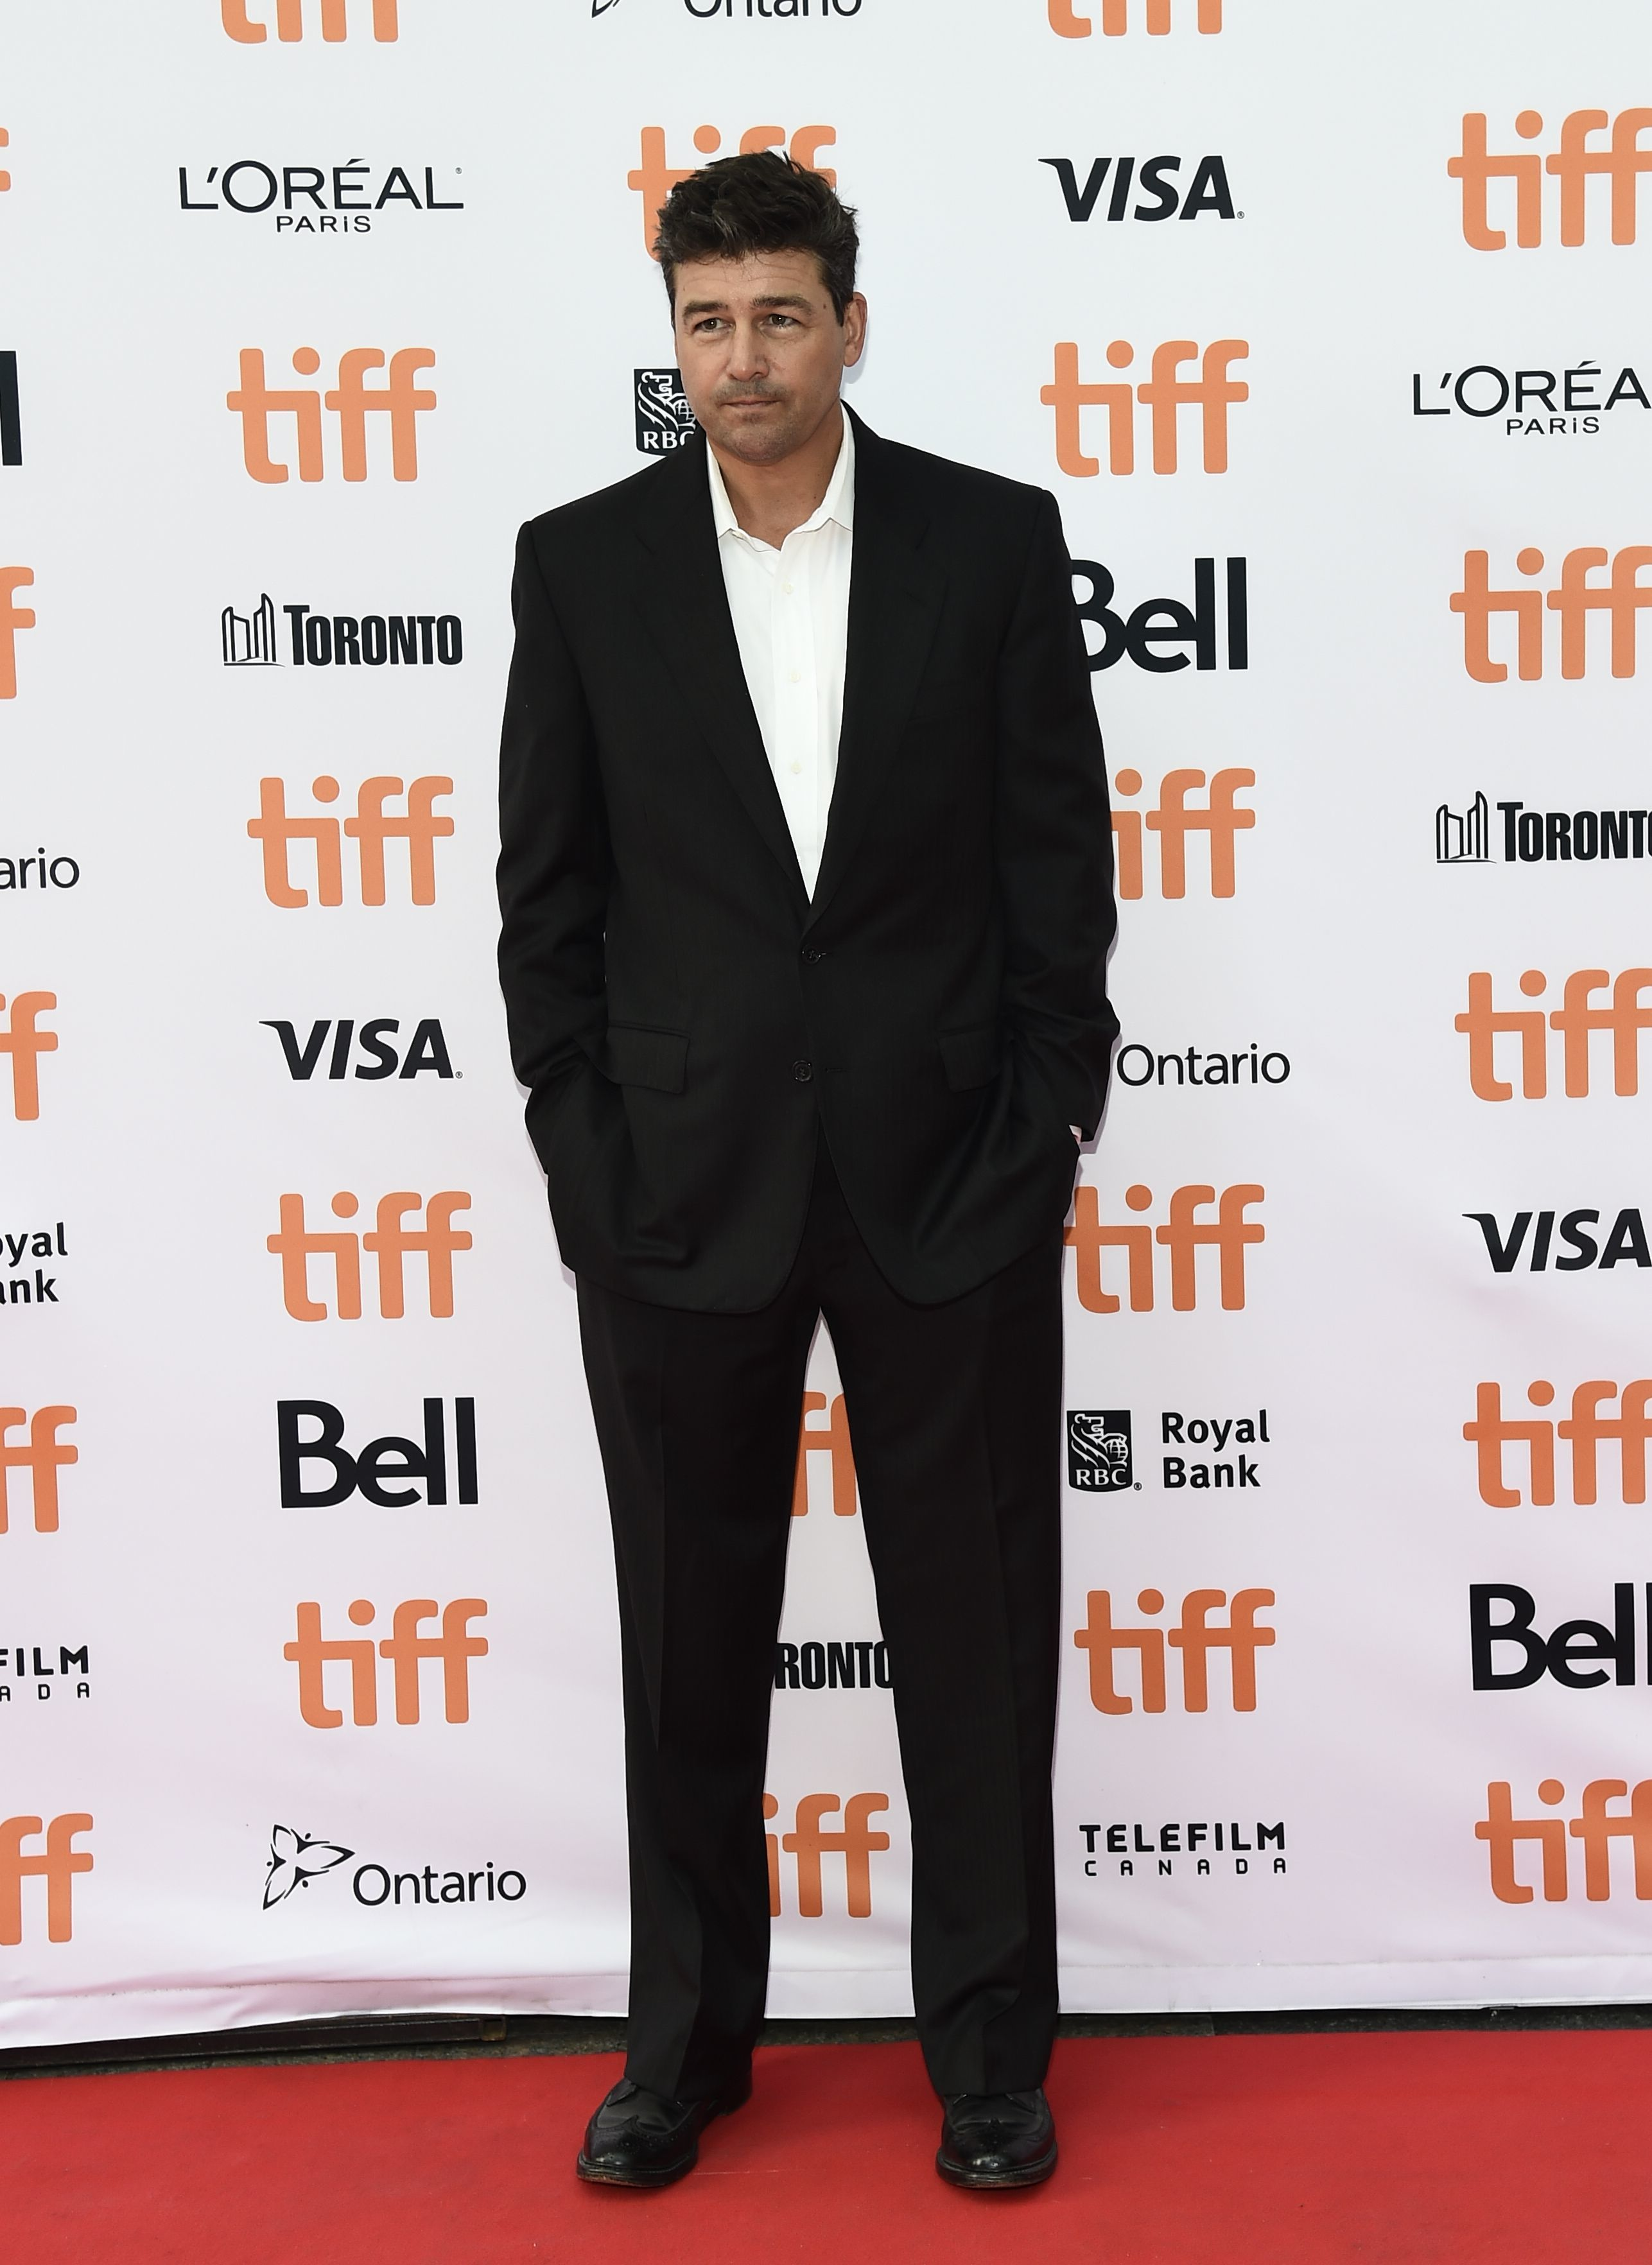 Kyle Chandler attends the 'Manchester By The Sea' premiere at the Toronto International Film Festival, on Sept. 13, 2016.